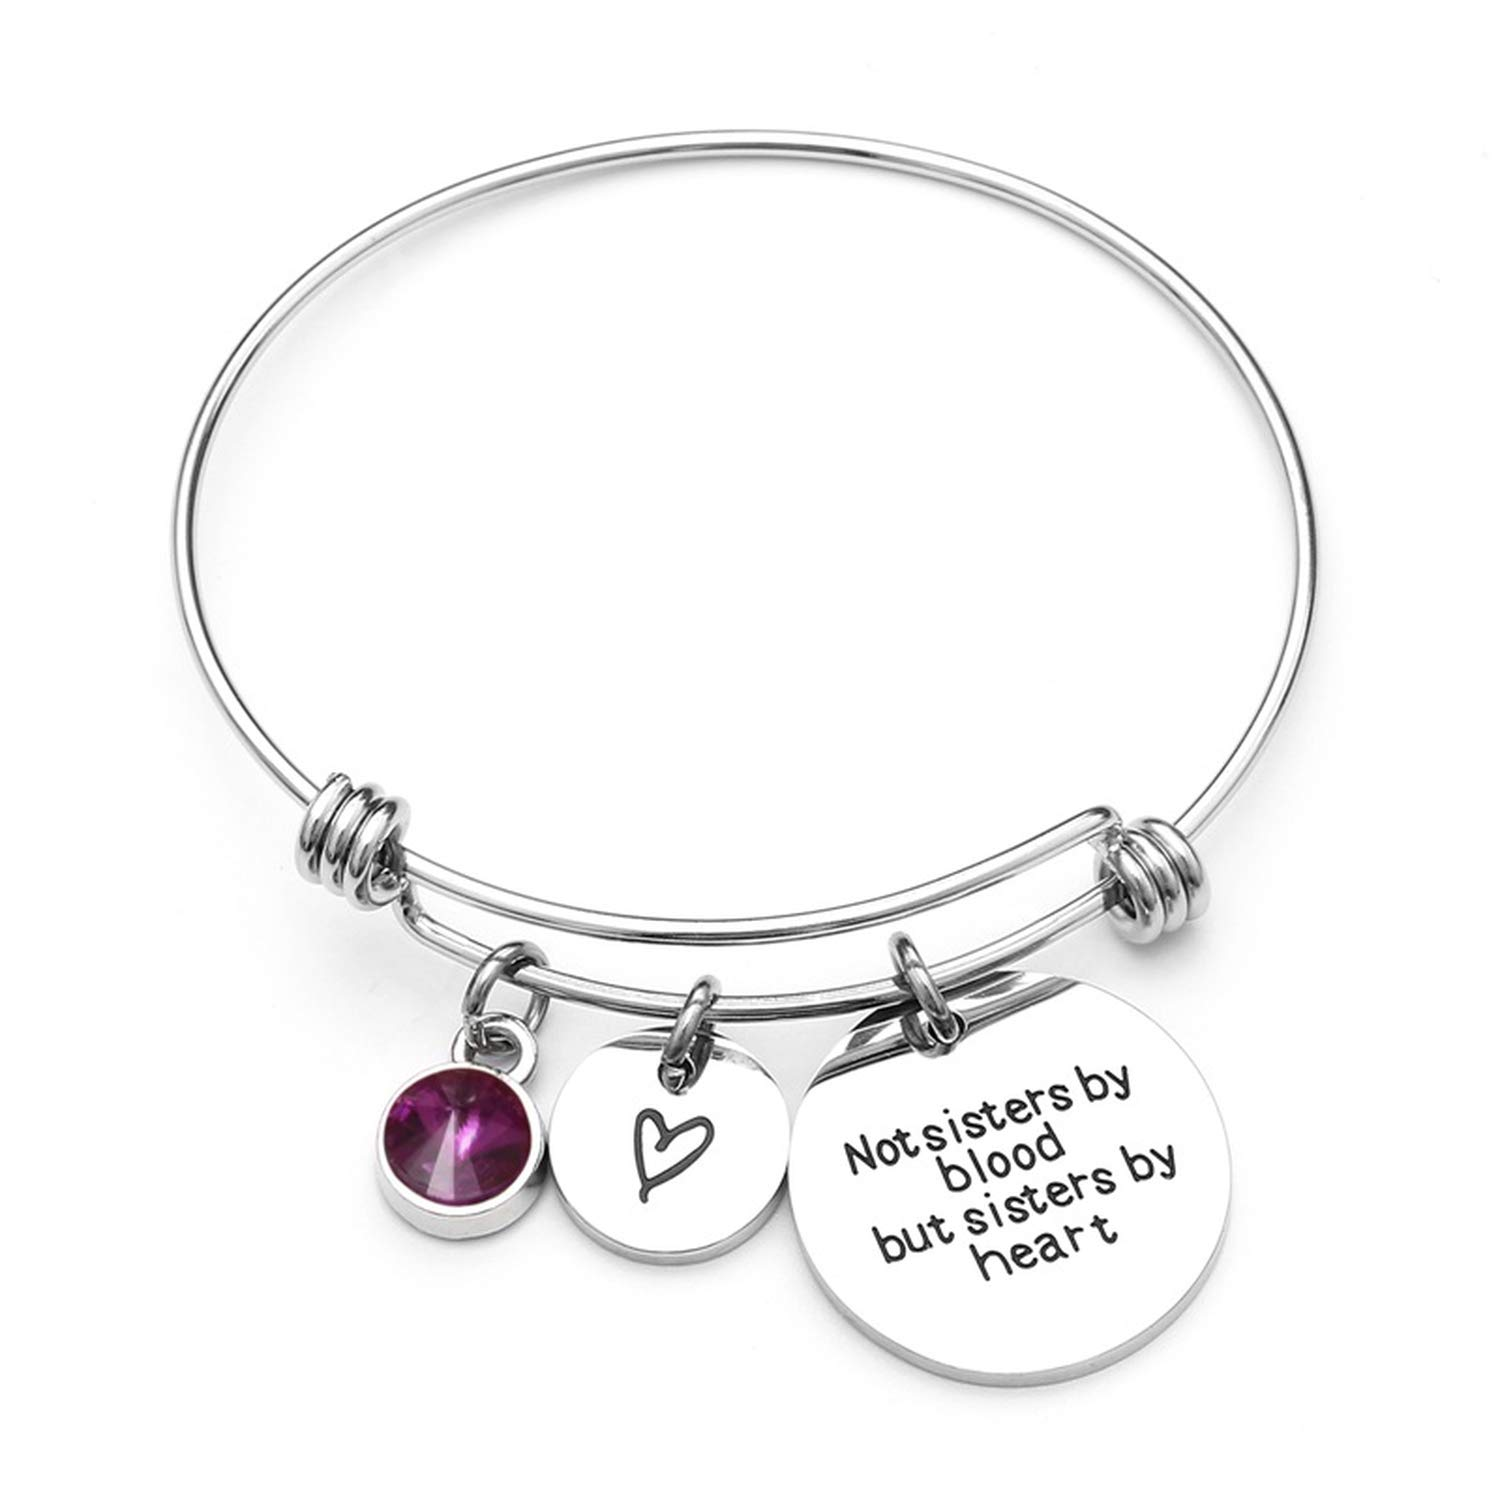 DLNCTD Birthstone Charm Bracelet for Women Stainless Steel Friendship Bangle Bracelet with Quote Sister,February,China